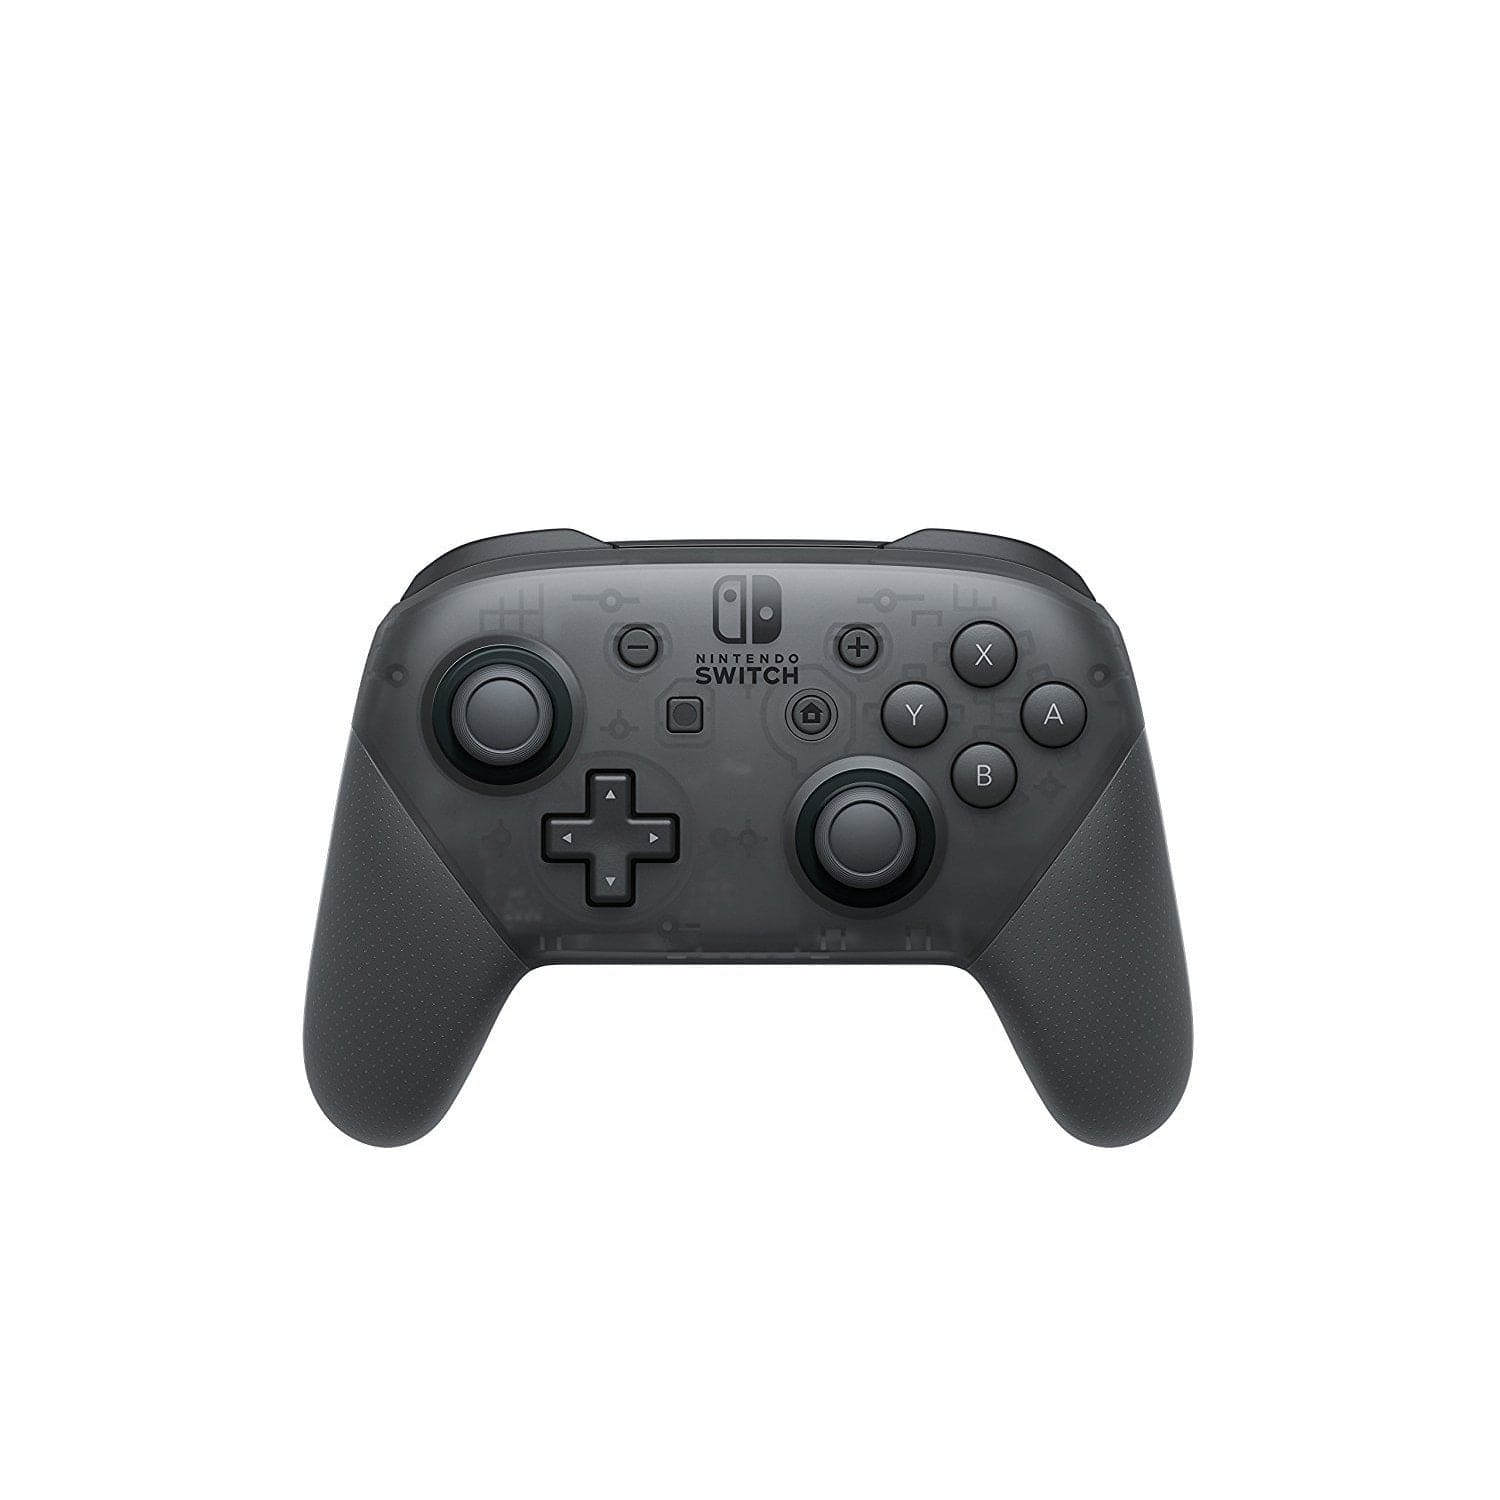 Nintendo Switch Pro Controller Slickdeals